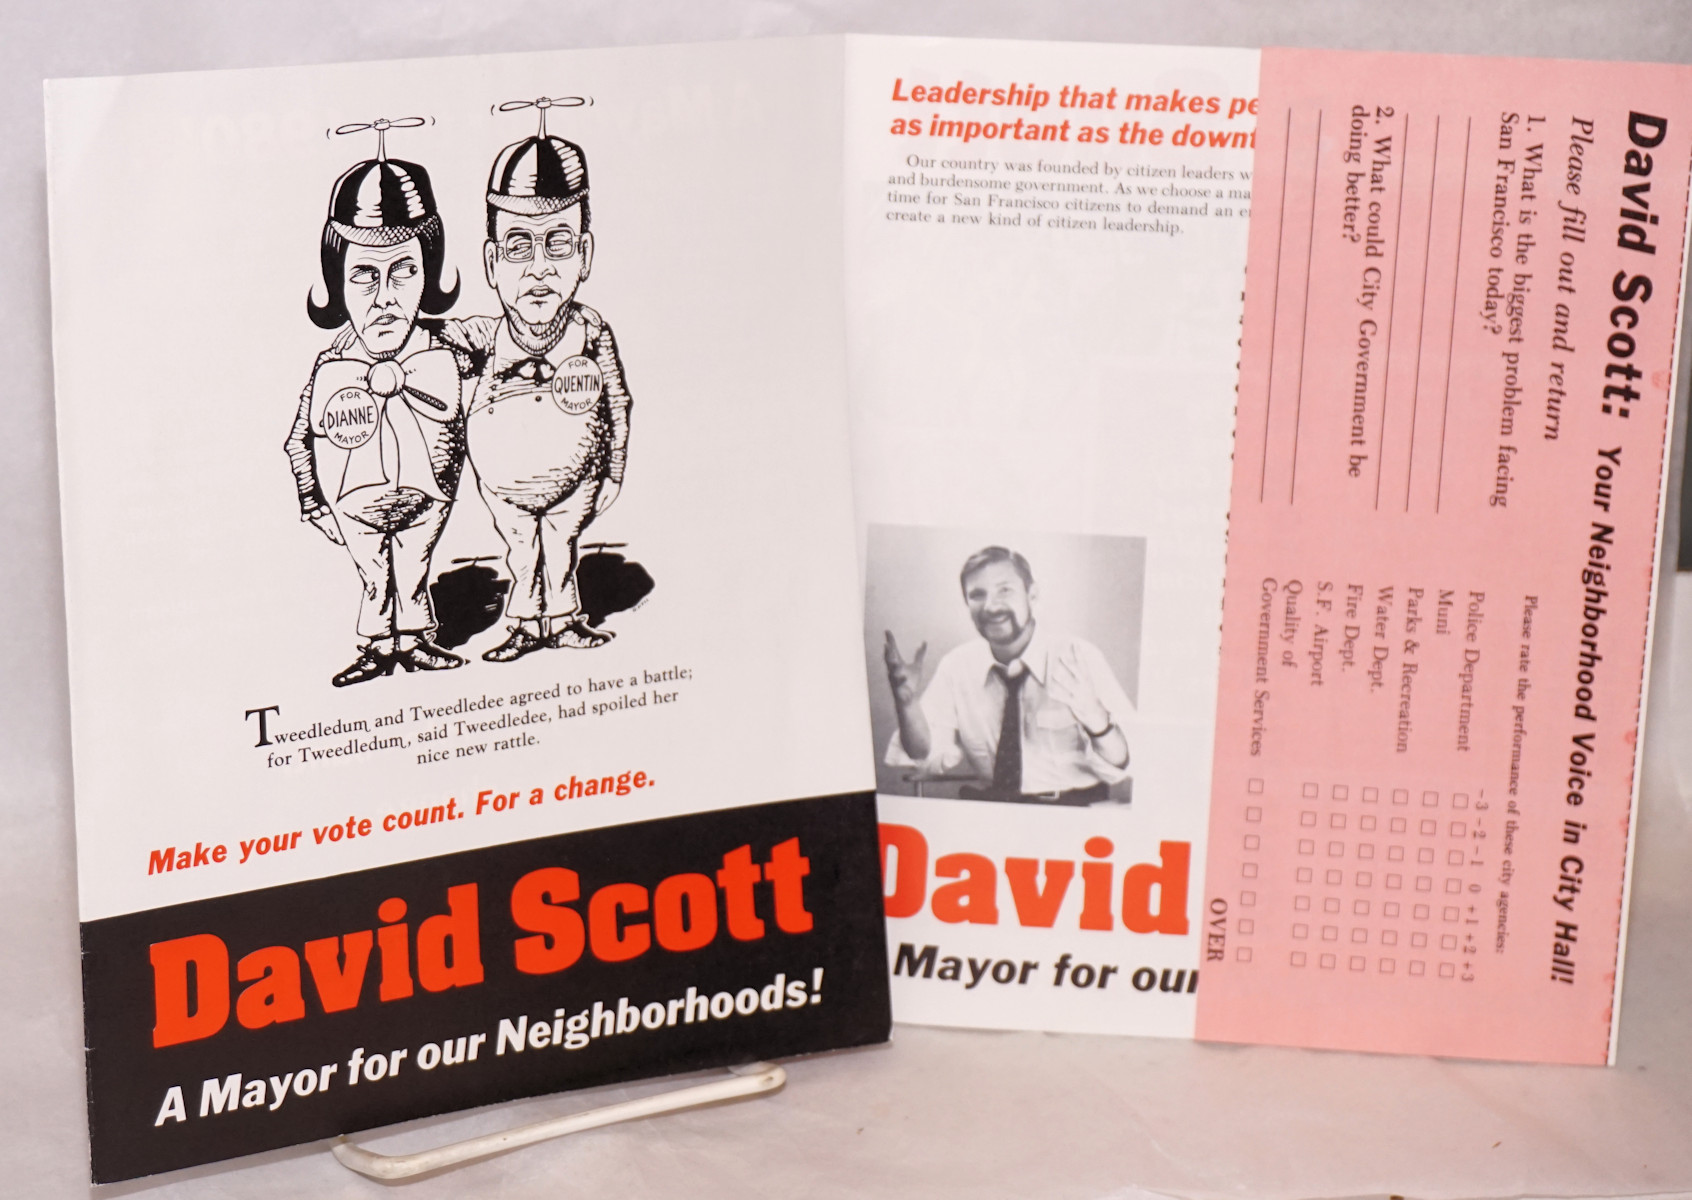 david scott a mayor for our neighborhoods handbill brochure david